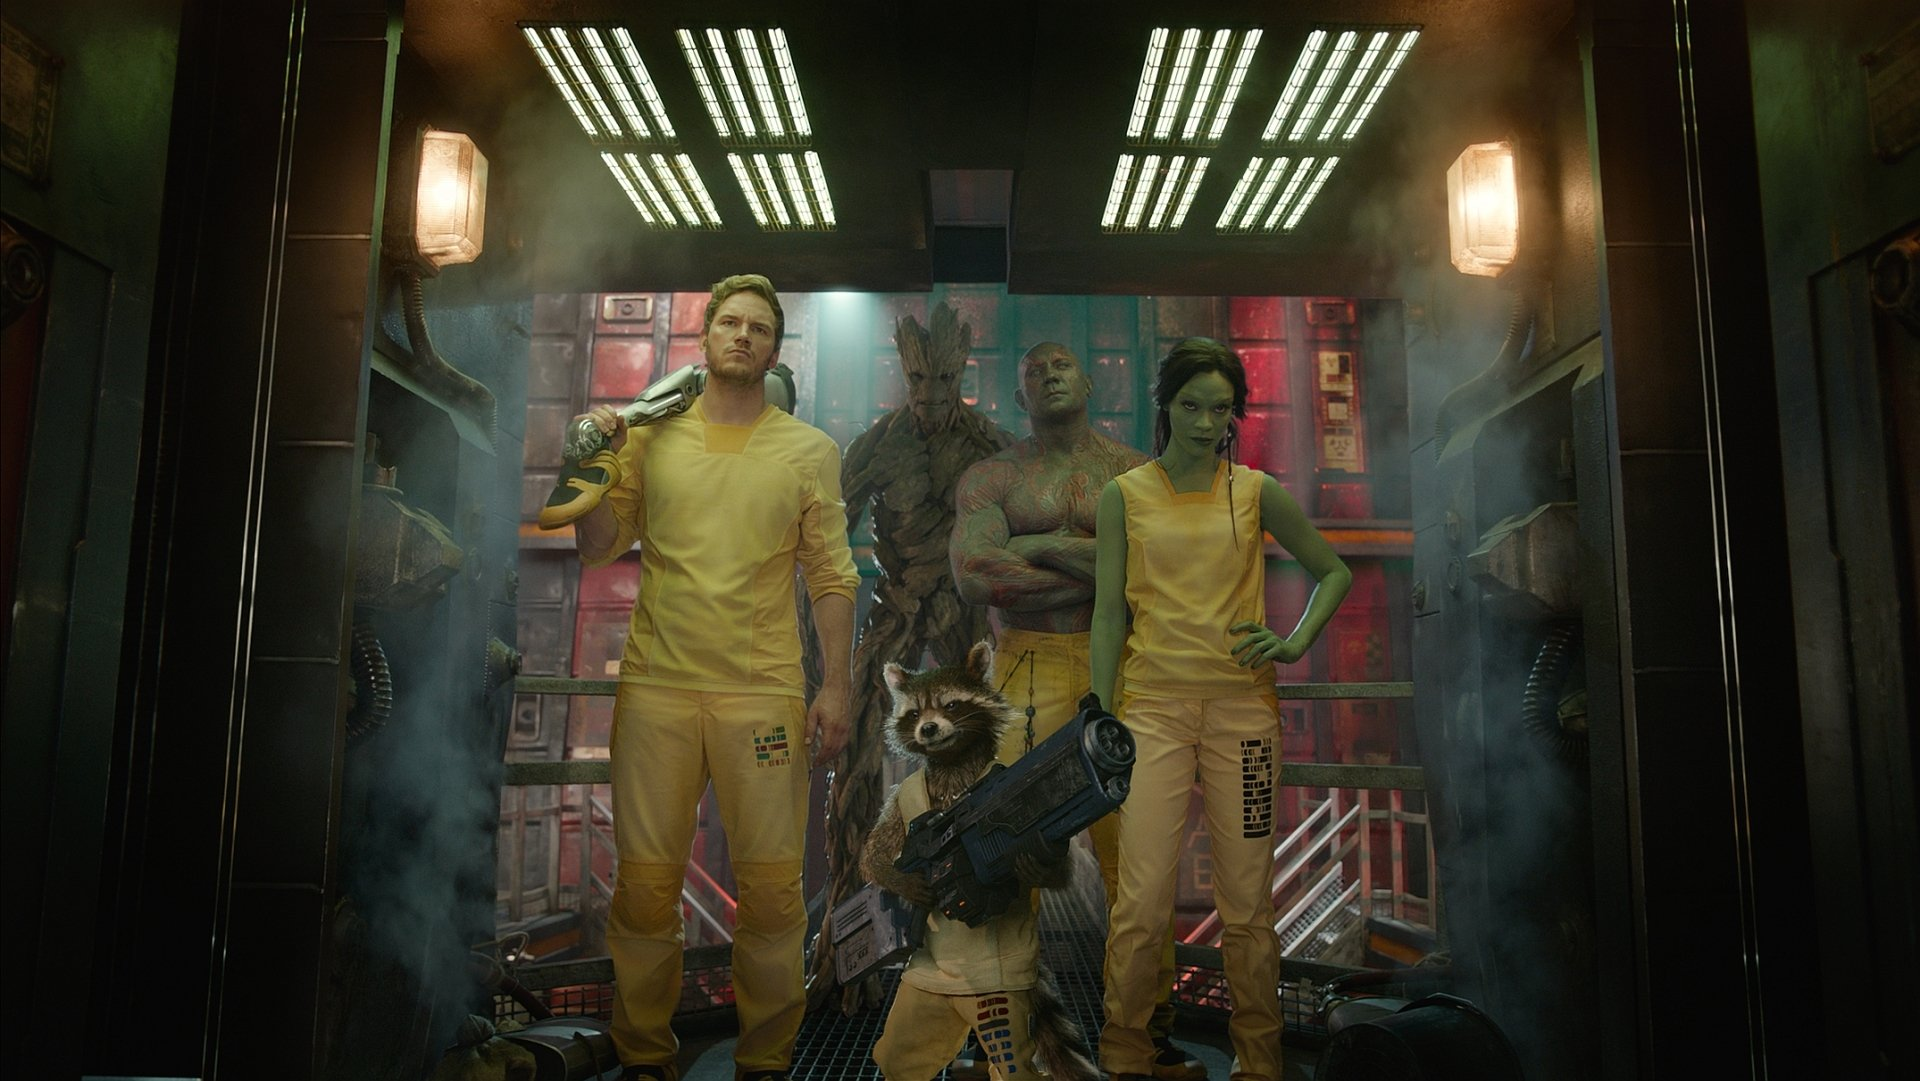 Movie - Guardians of the Galaxy  Peter Quill Drax The Destroyer Dave Bautista Groot Rocket Raccoon Chris Pratt Zoe Saldana Gamora Wallpaper